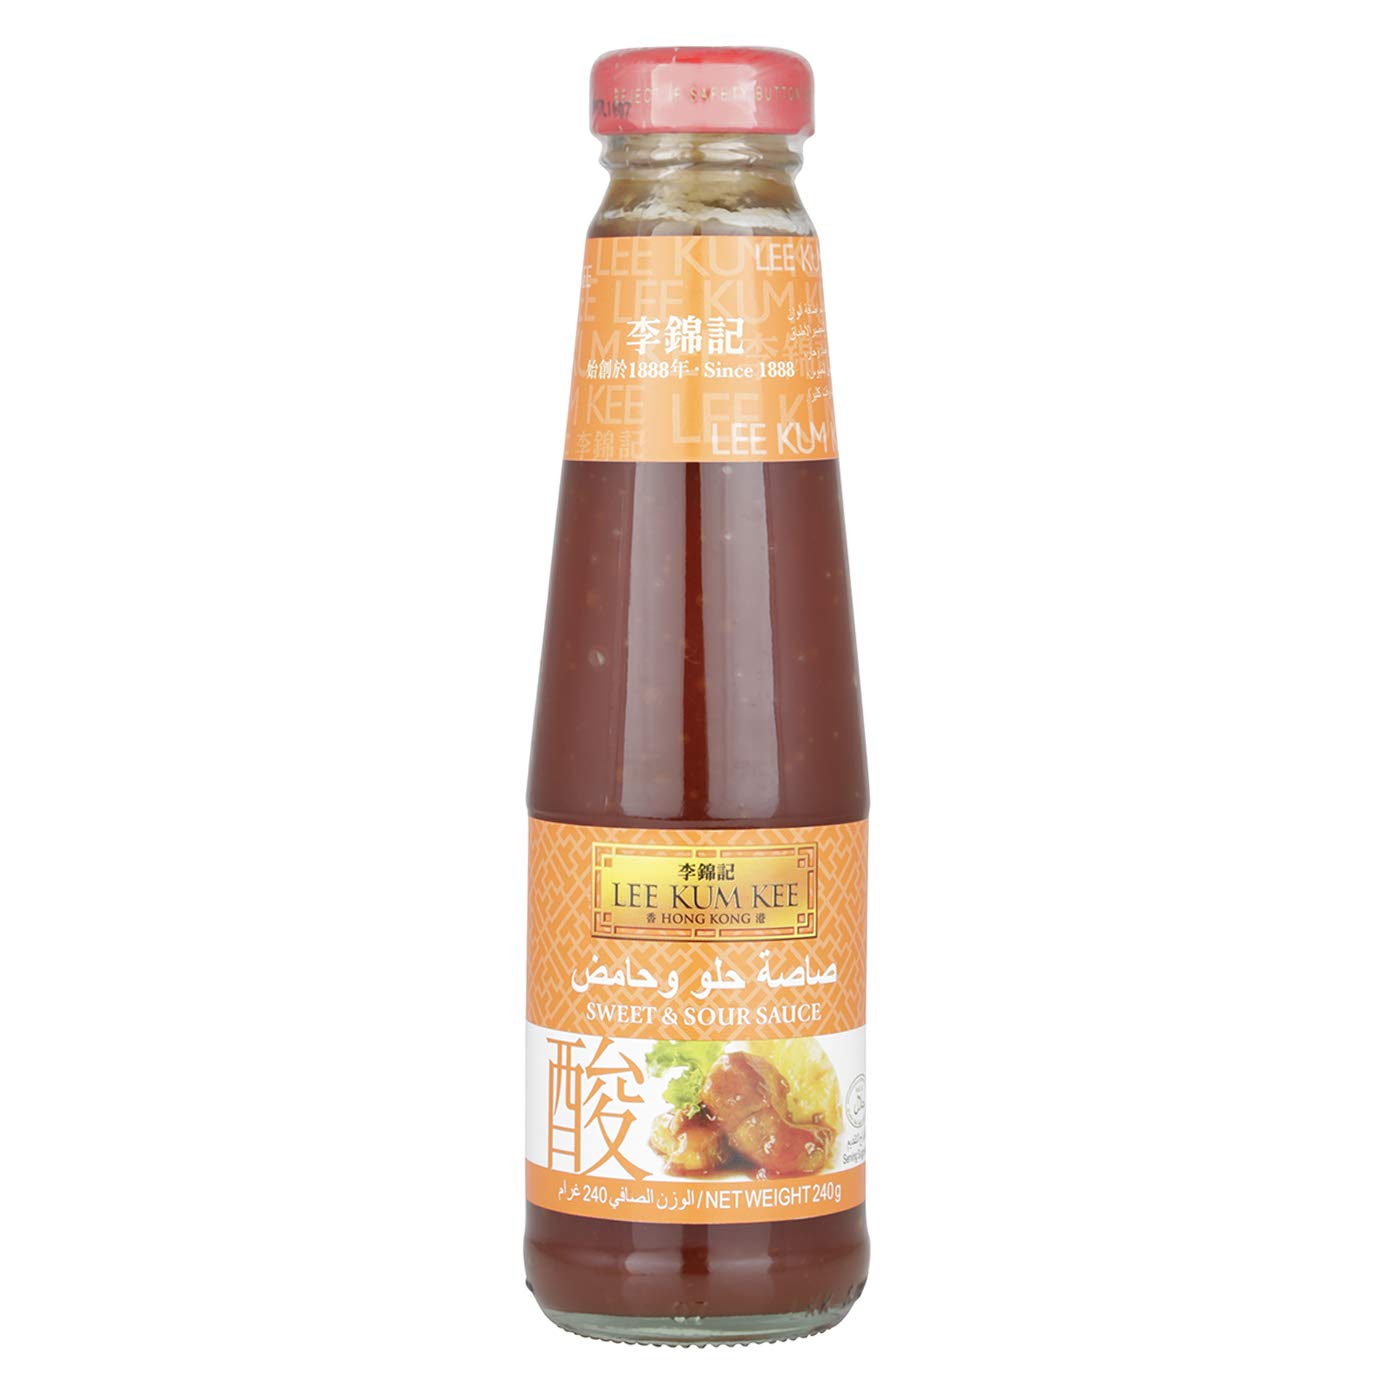 Lee Kum Kee Sauce Sweet And Sour 8 5 Oz Walmart Com Walmart Com